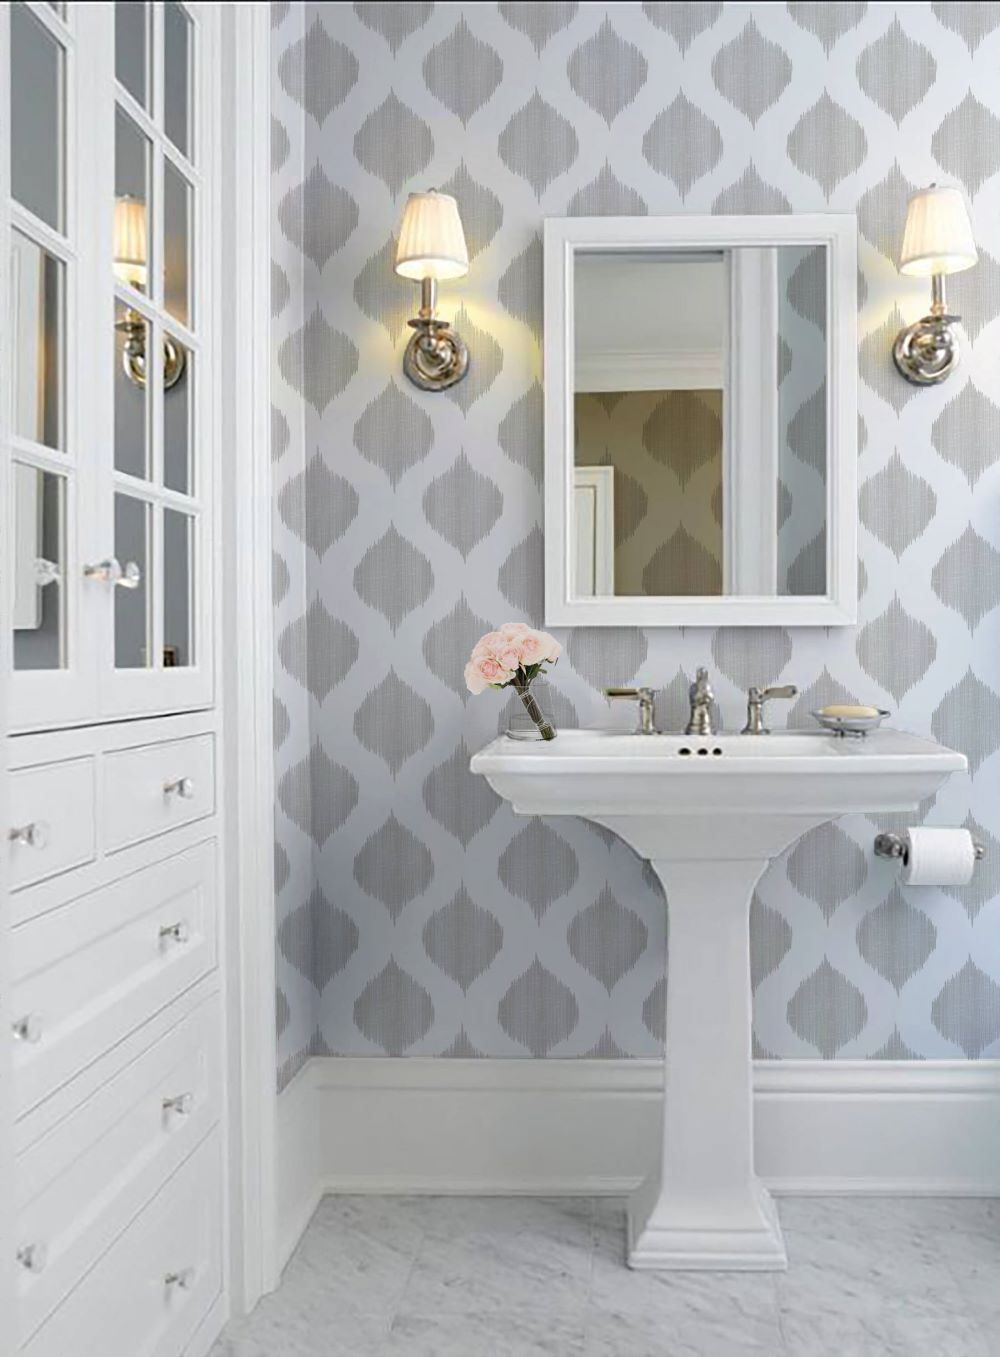 Removable Wallpaper Is The Easiest Way To Give Your Room An Instant Facelift For Spring Lulus Com Fashion Blog